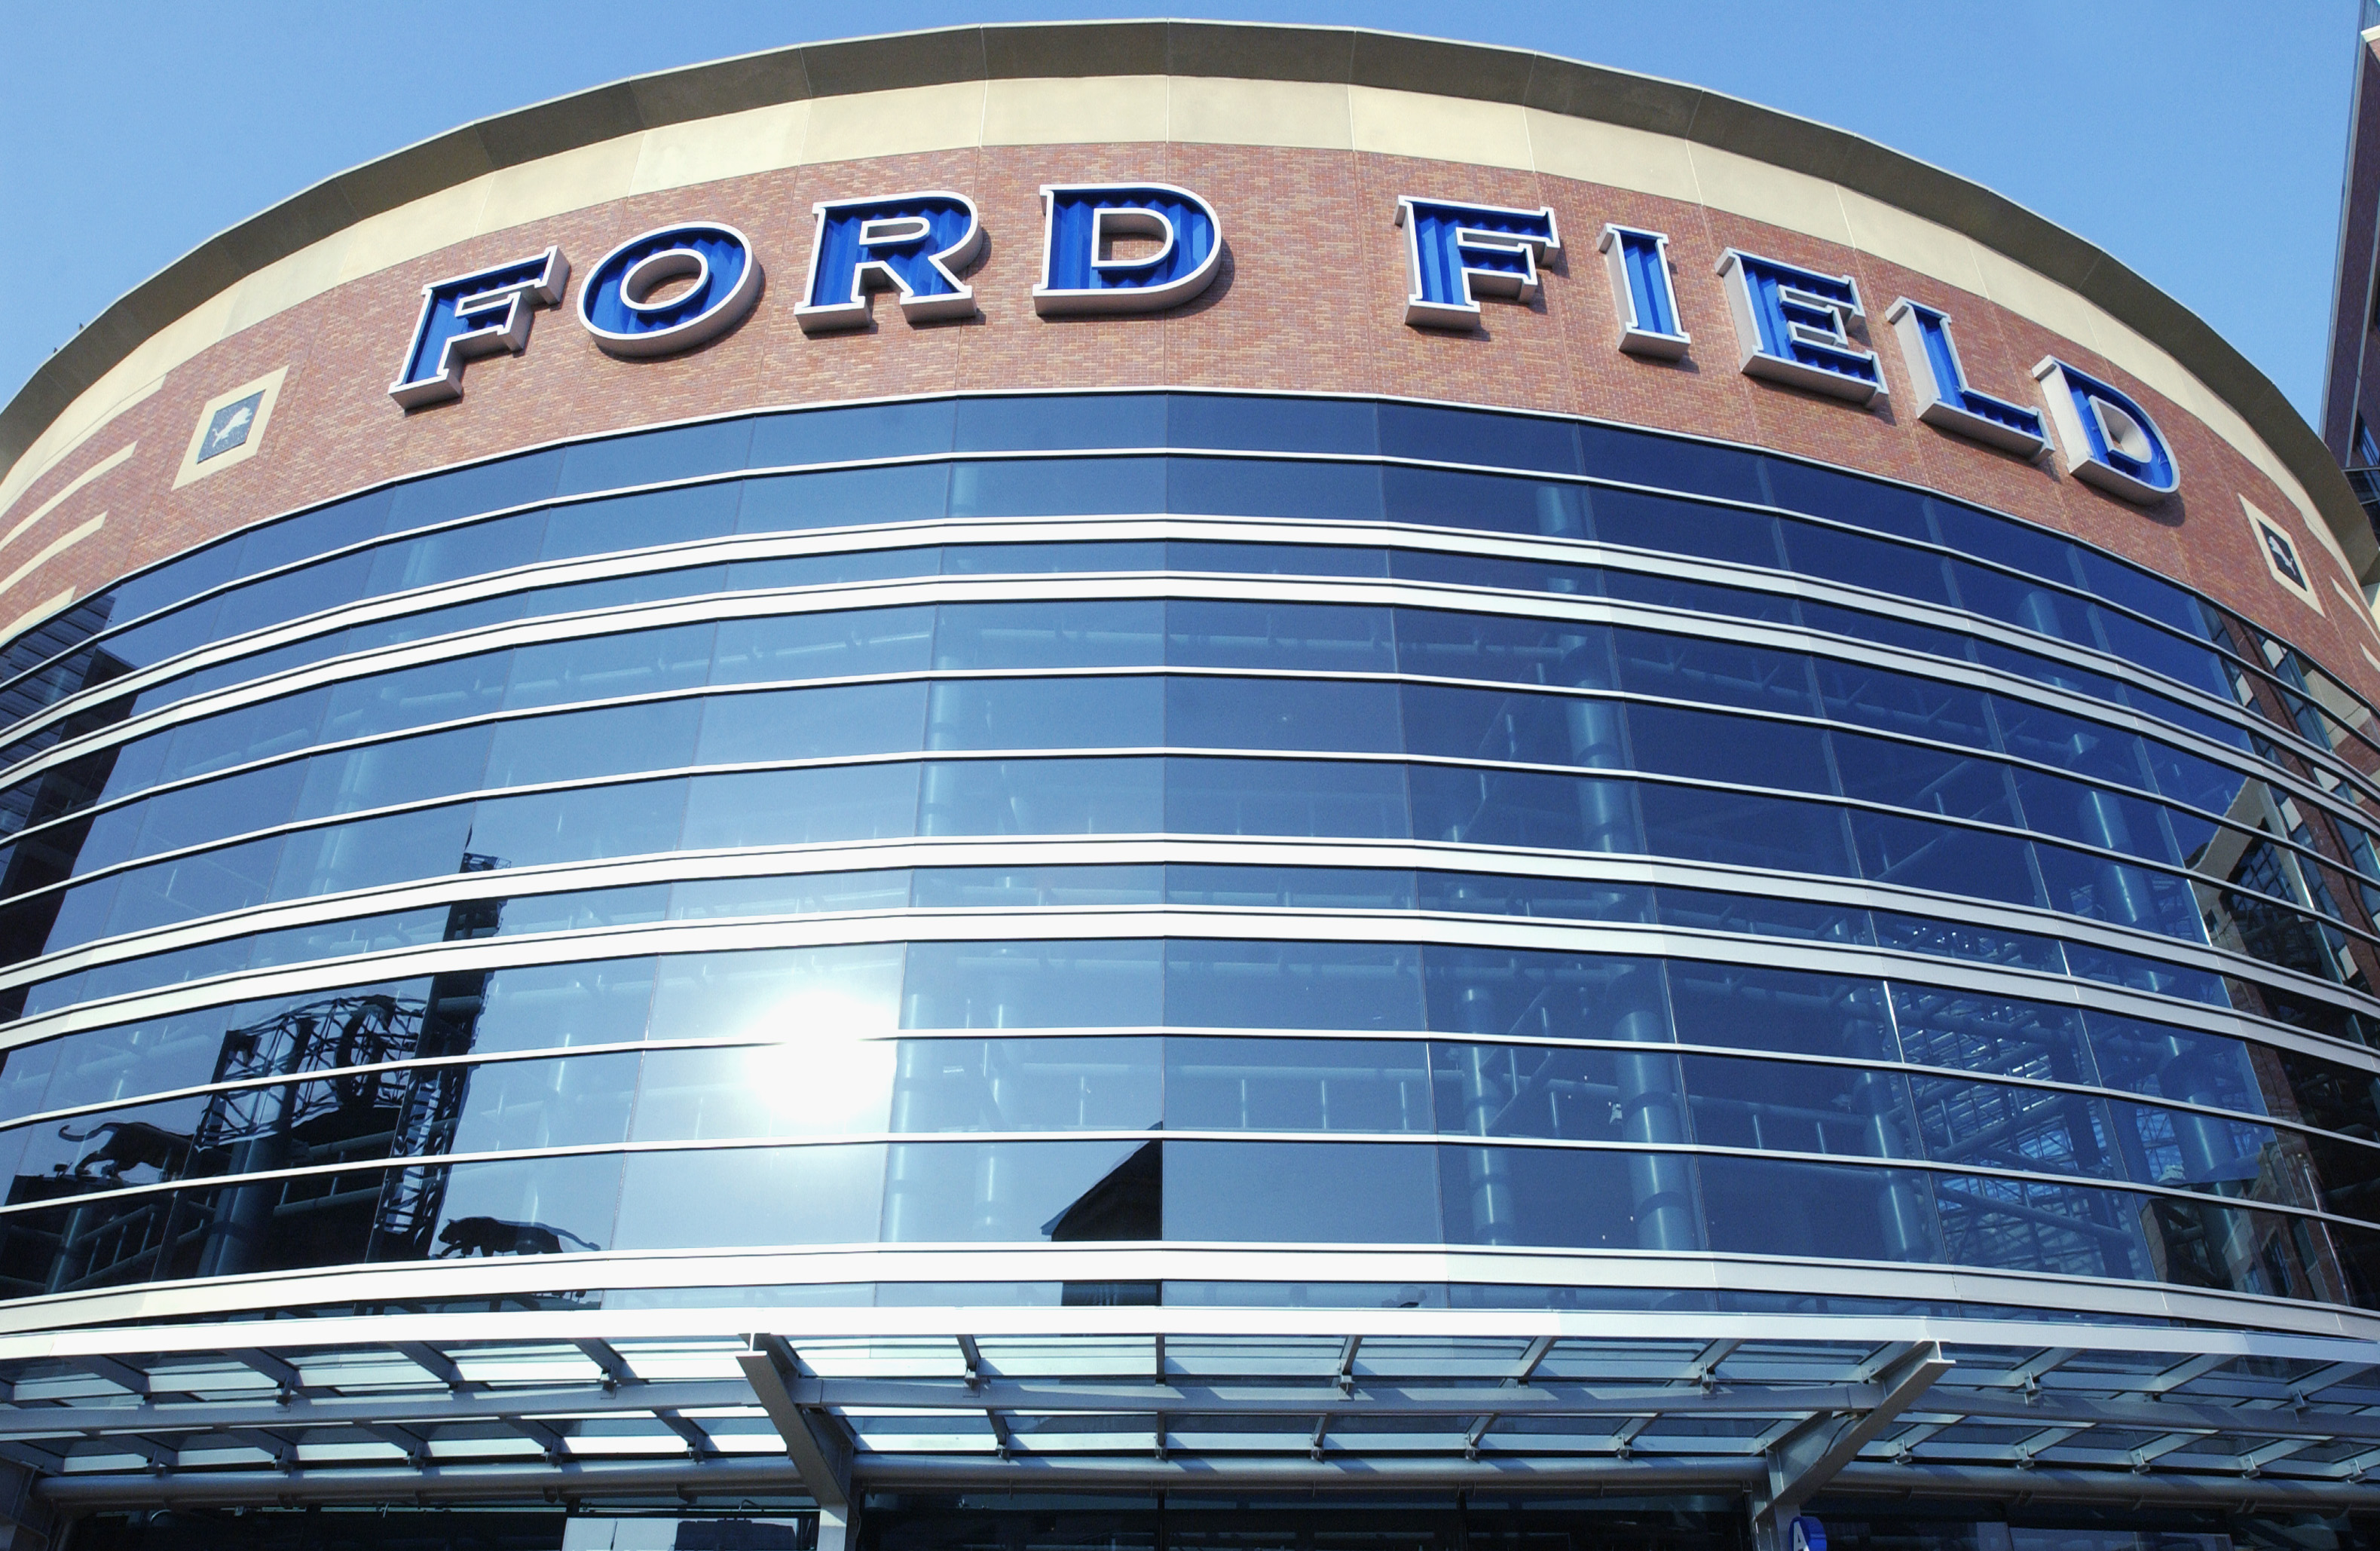 DETROIT, MI - SEPTEMBER 29:  An exterior view of Ford Field taken before the game between the New Orleans Saints and the Detroit Lions on September 29, 2002 at Ford Field in Detroit, Michigan. The Lions won 26-21. (Photo by Darron R. Silva/ Getty Images)